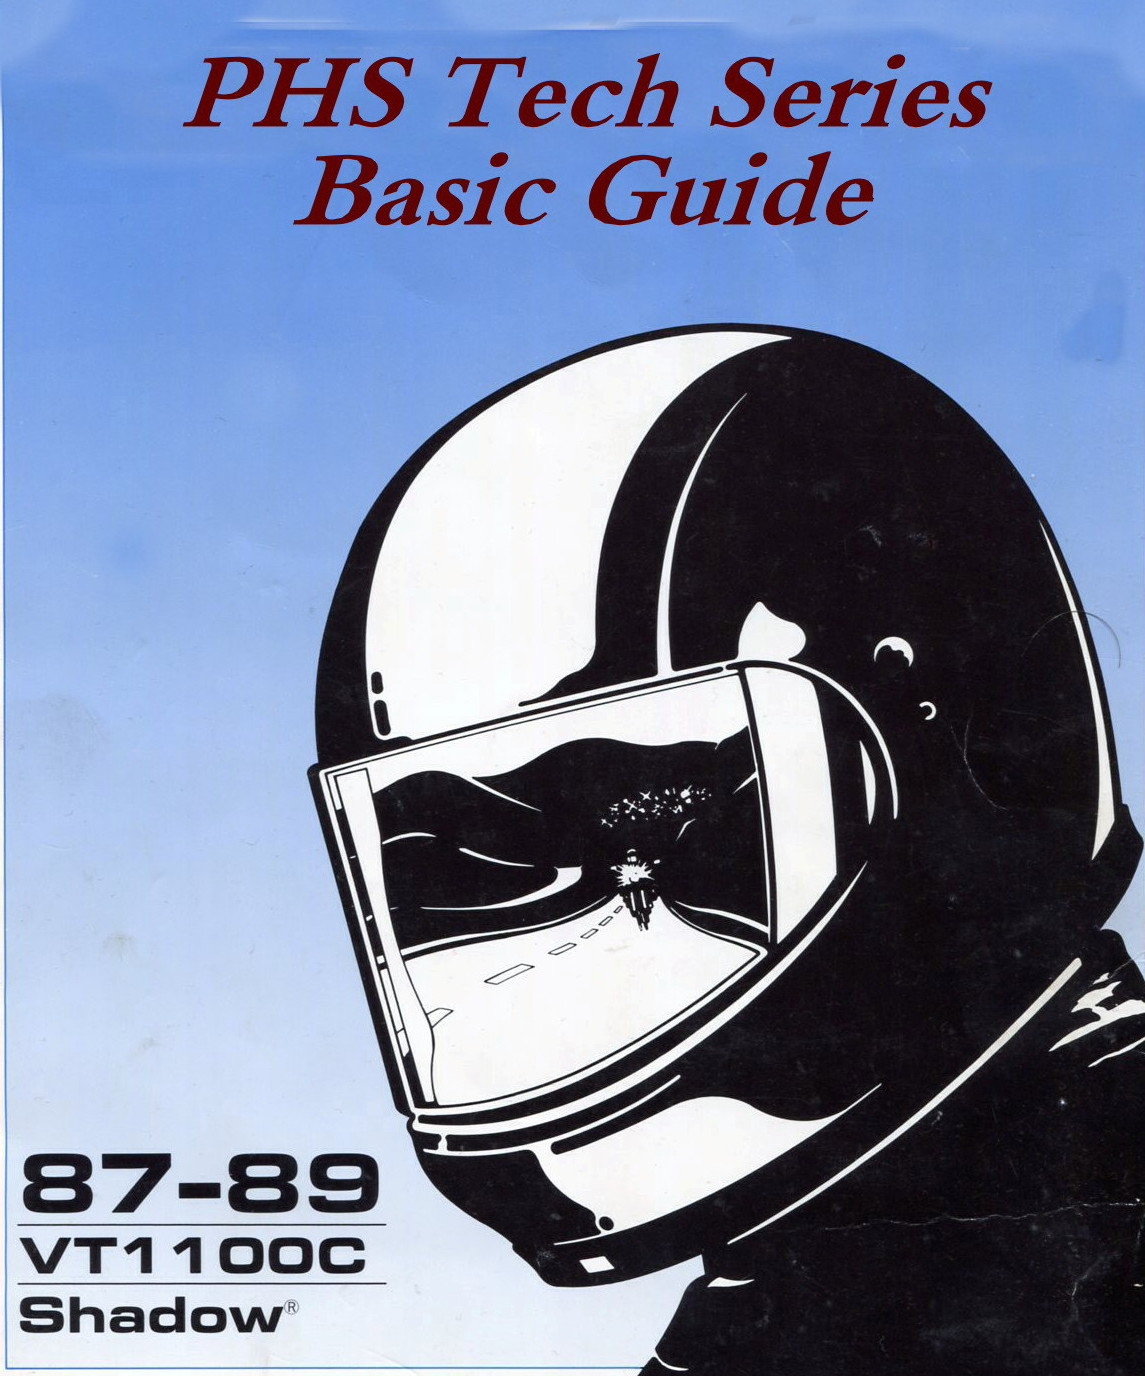 Tech Series Honda Shadow Motorcycle Guide Phscollectorcarworld 1983 Introduced In To Tap Into The American Cruiser Market Hondas Bike Was Limited At First About 700 Cc Due Tariff On